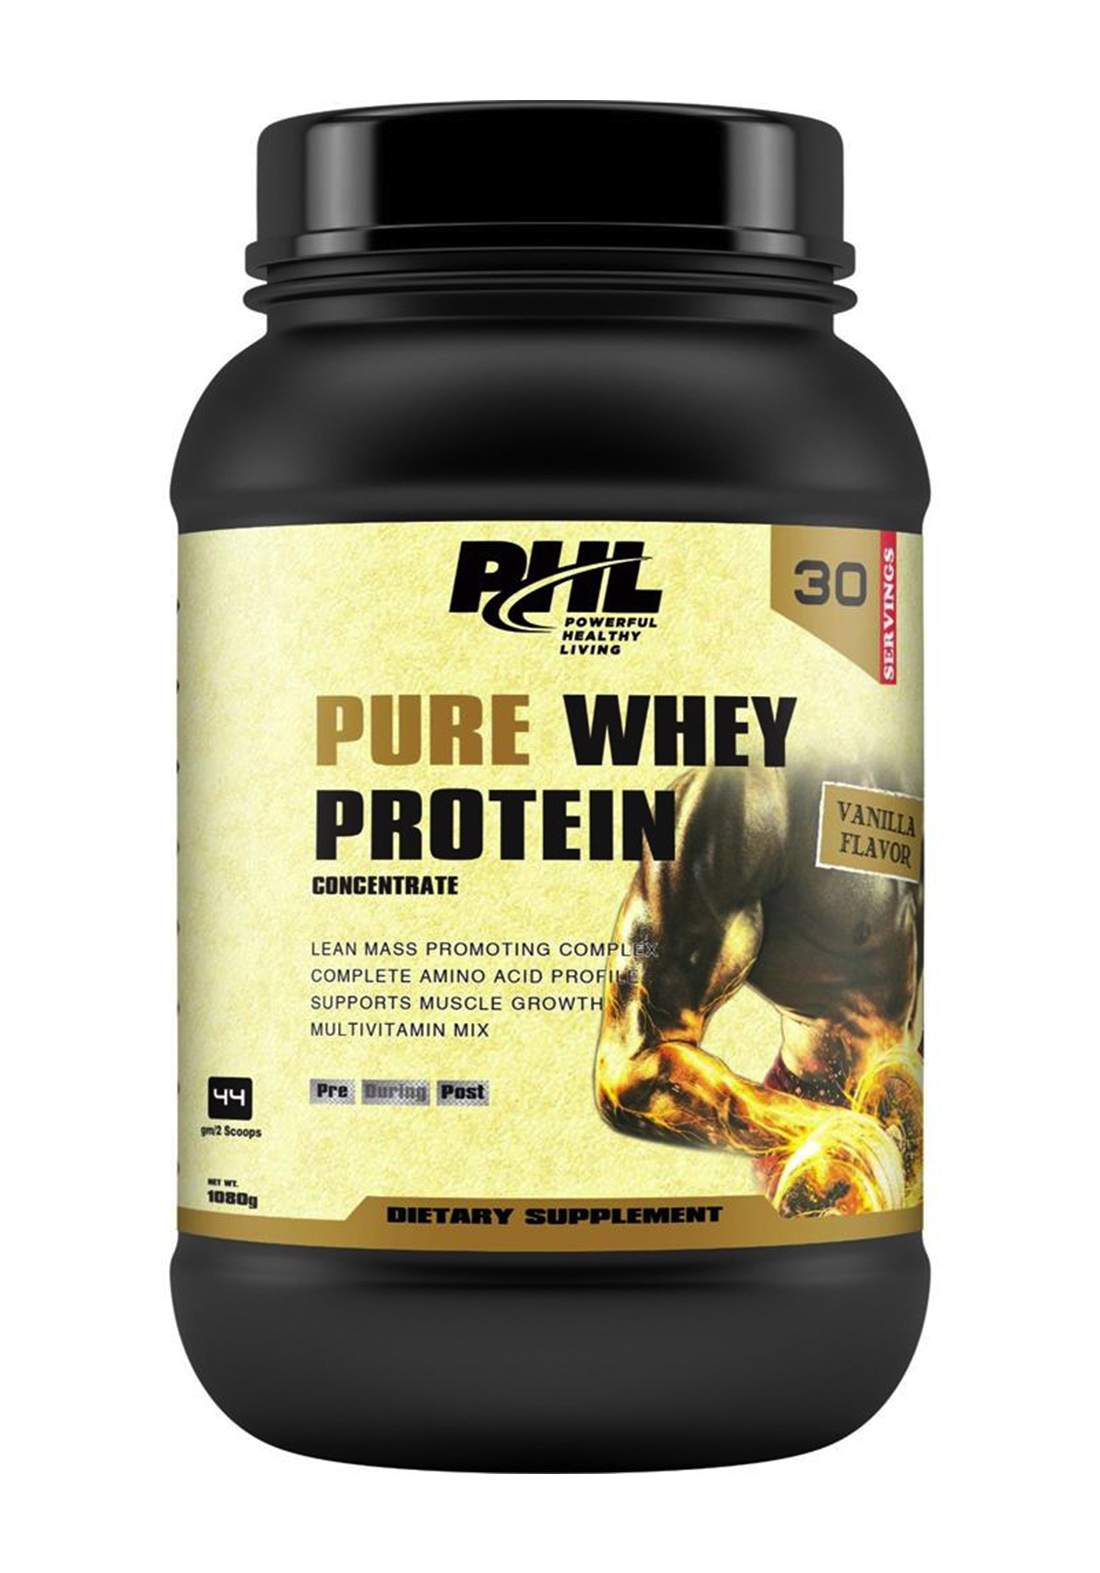 Phl Pure Whey Protein Vanilla  30 Servings 1080 g بروتين مكمل غذائي